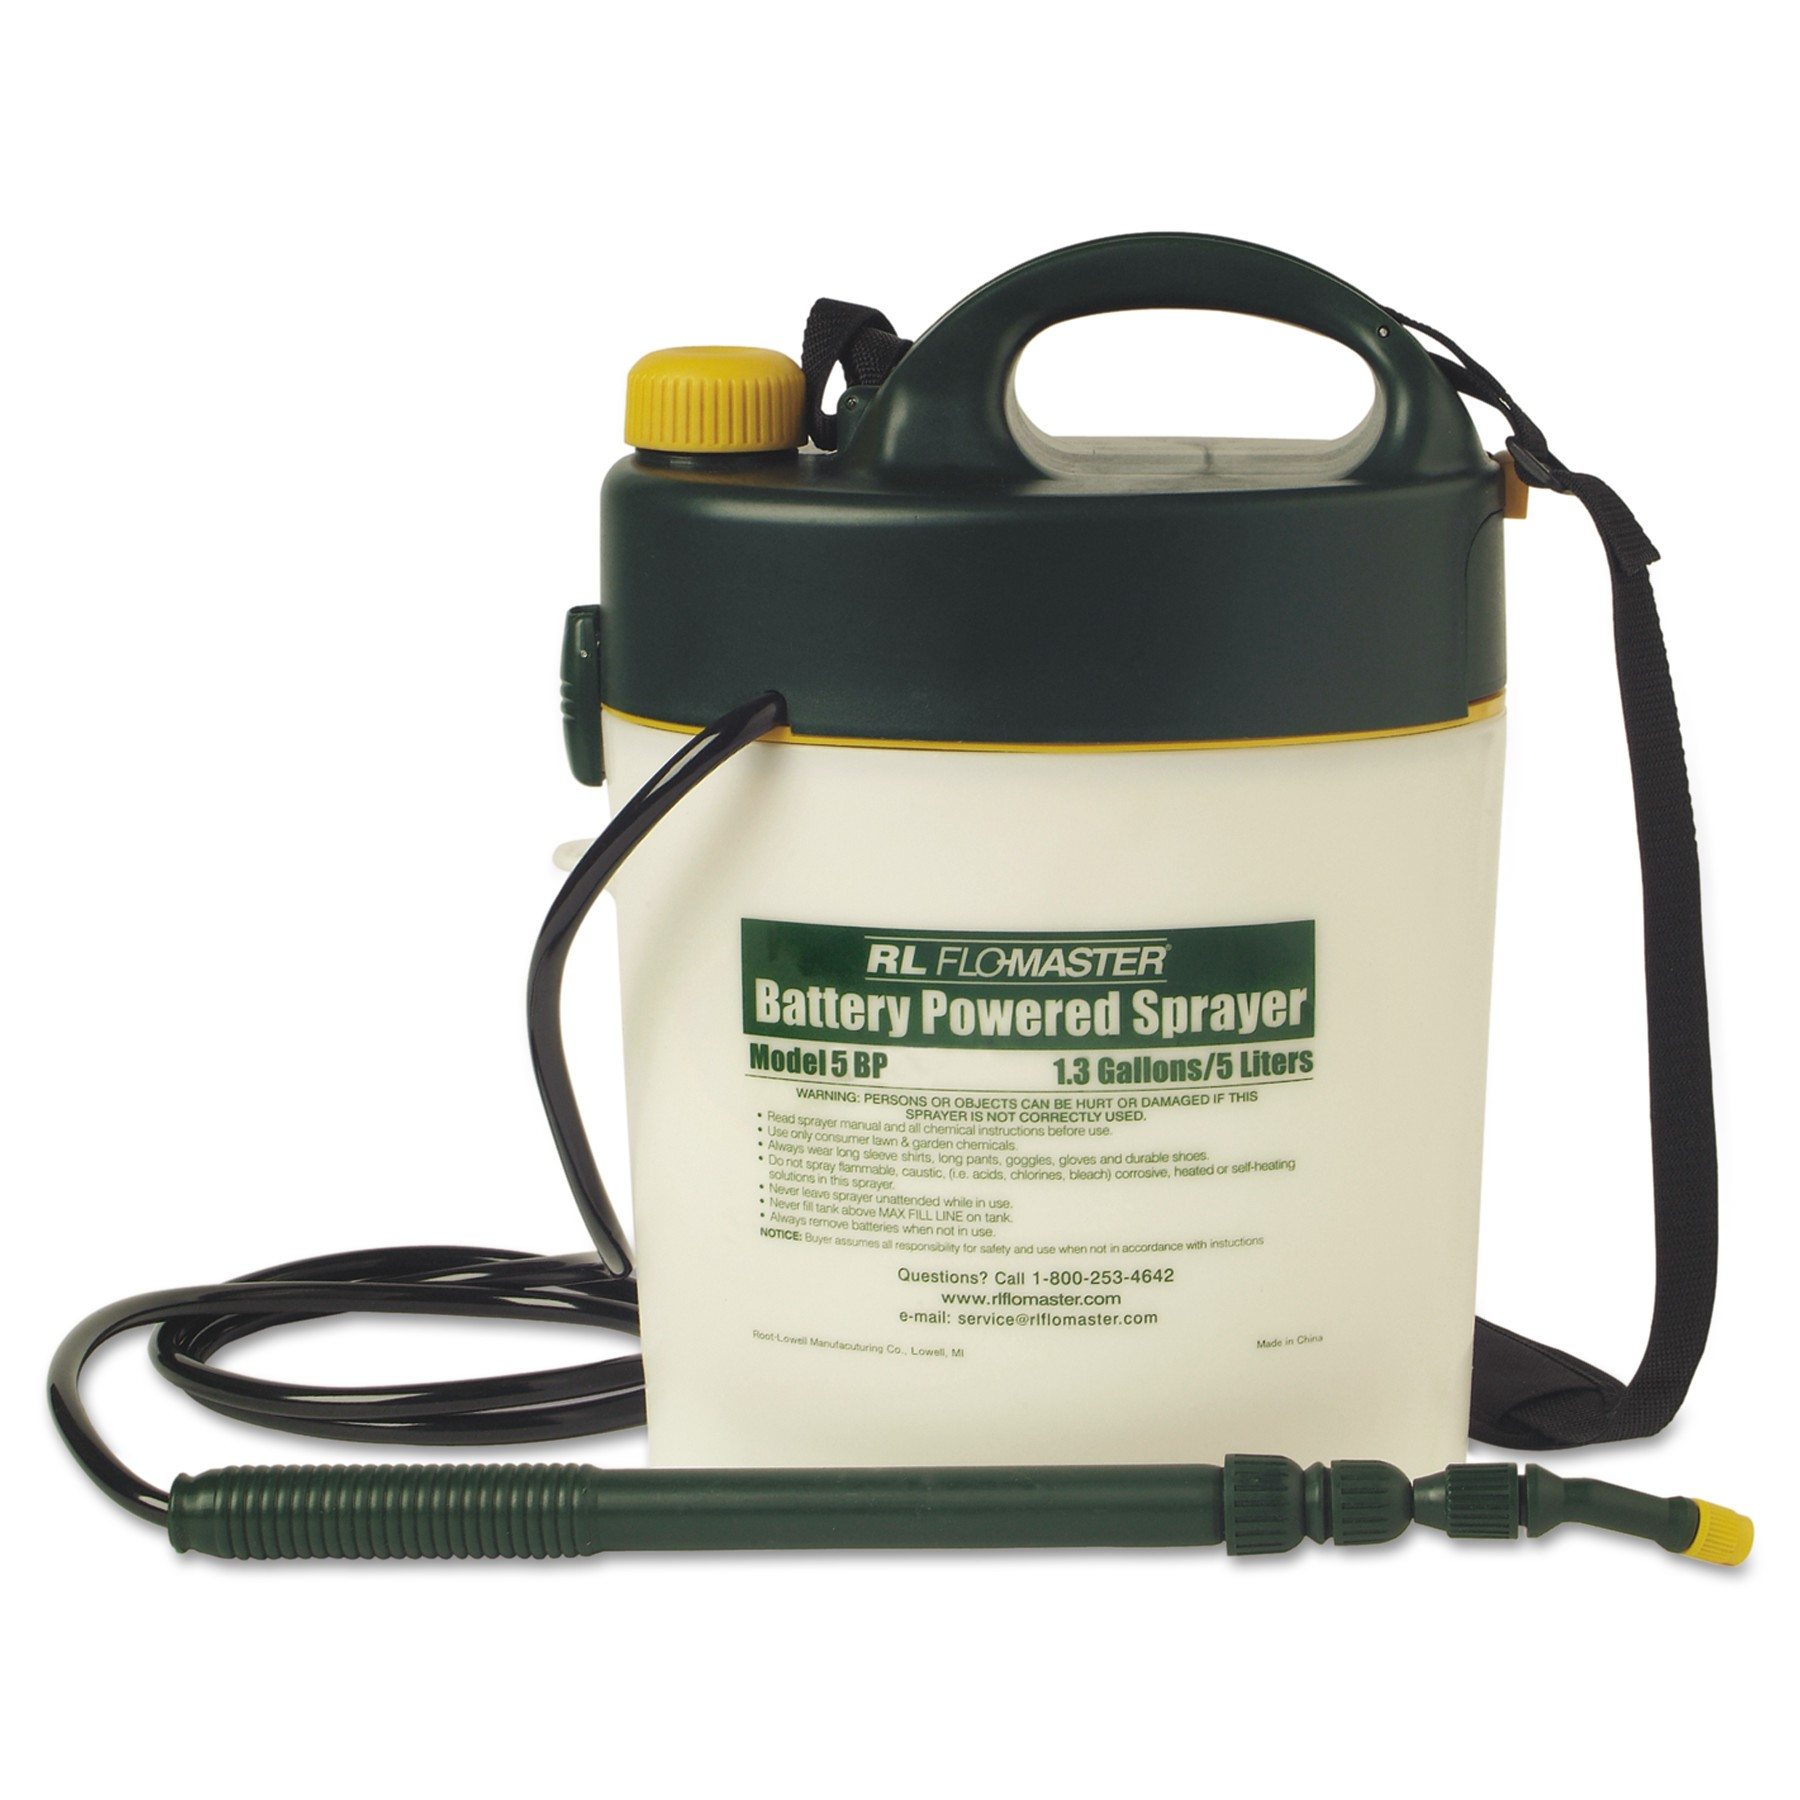 RL Flo-Master Portable Battery Powered Sprayer with Telescoping wand